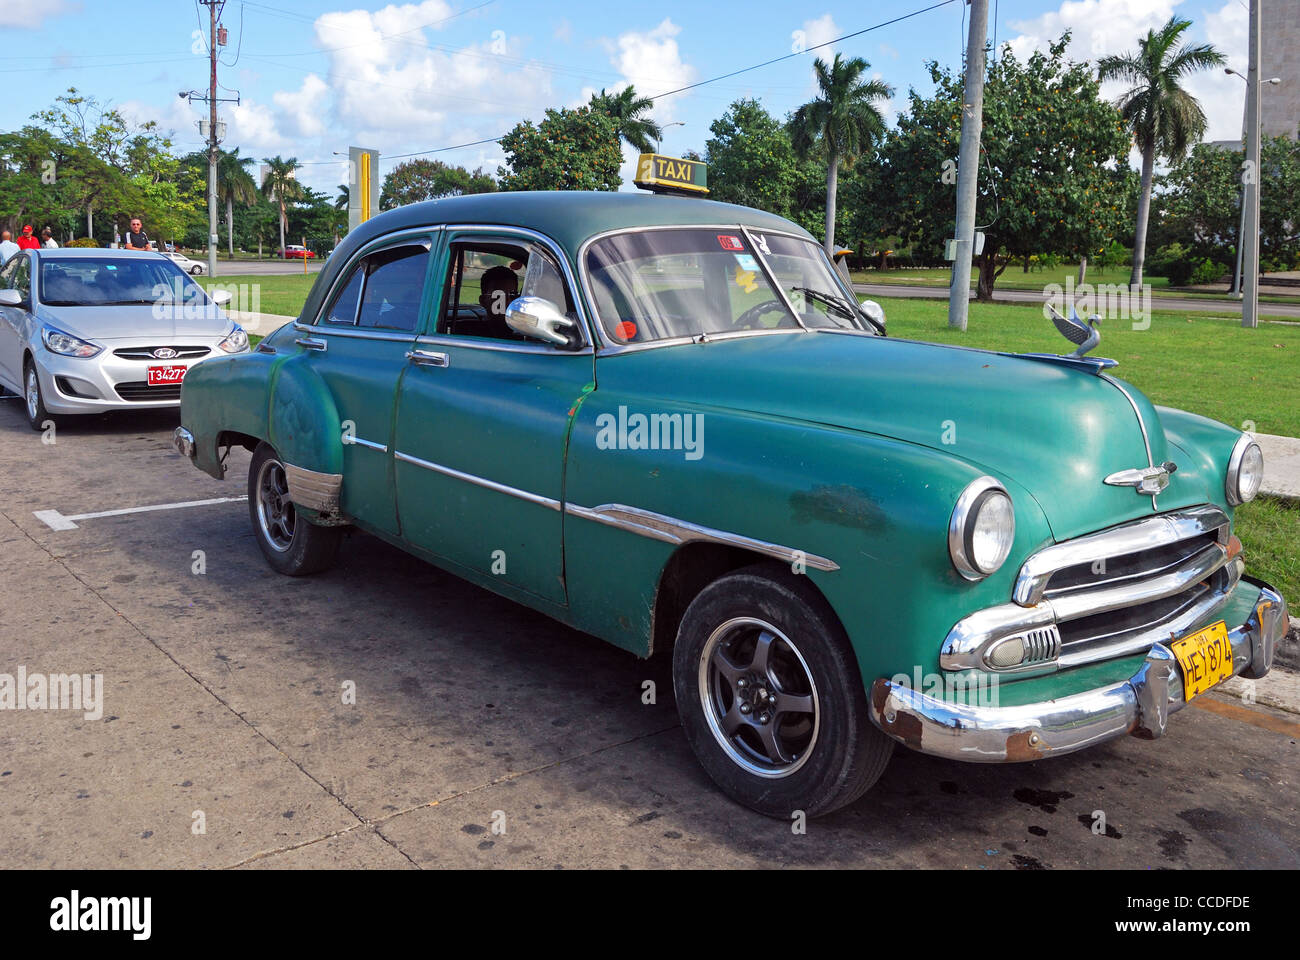 Chrysler Capital Bank >> Old American Chrysler Taxi, Havana (Habana), Cuba, Caribbean Stock Photo, Royalty Free Image ...